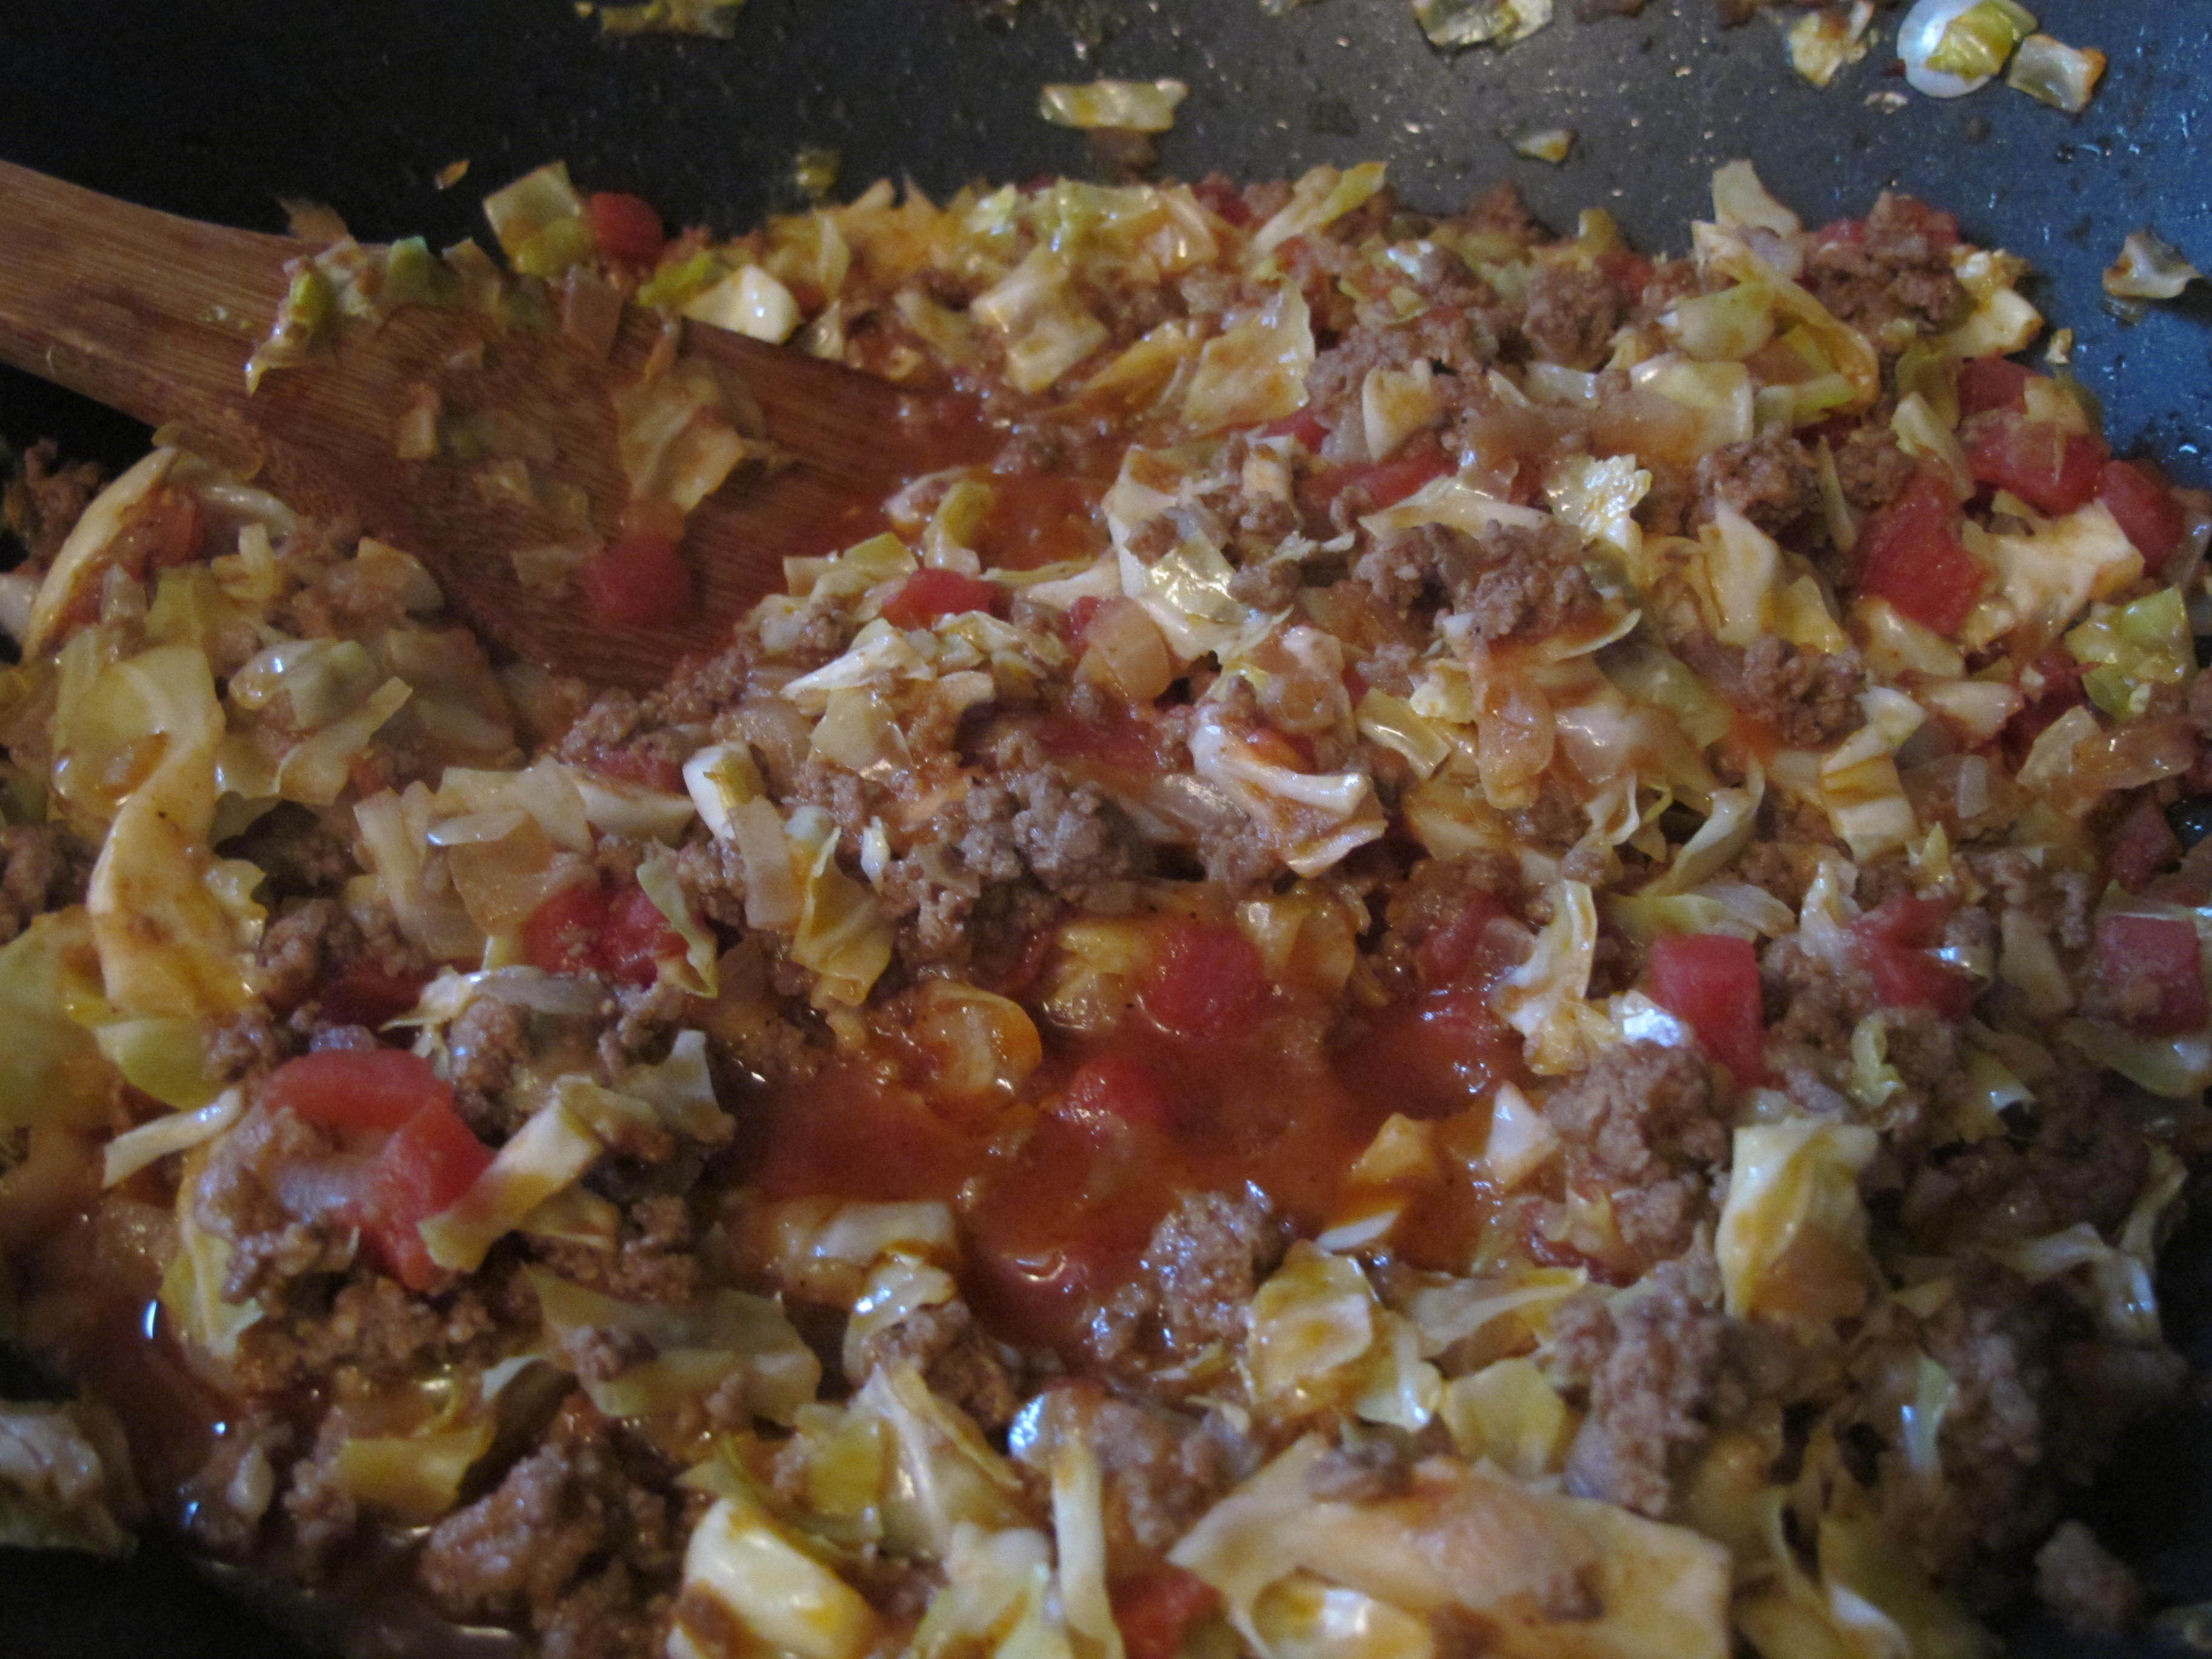 unrolled cabbage rolls